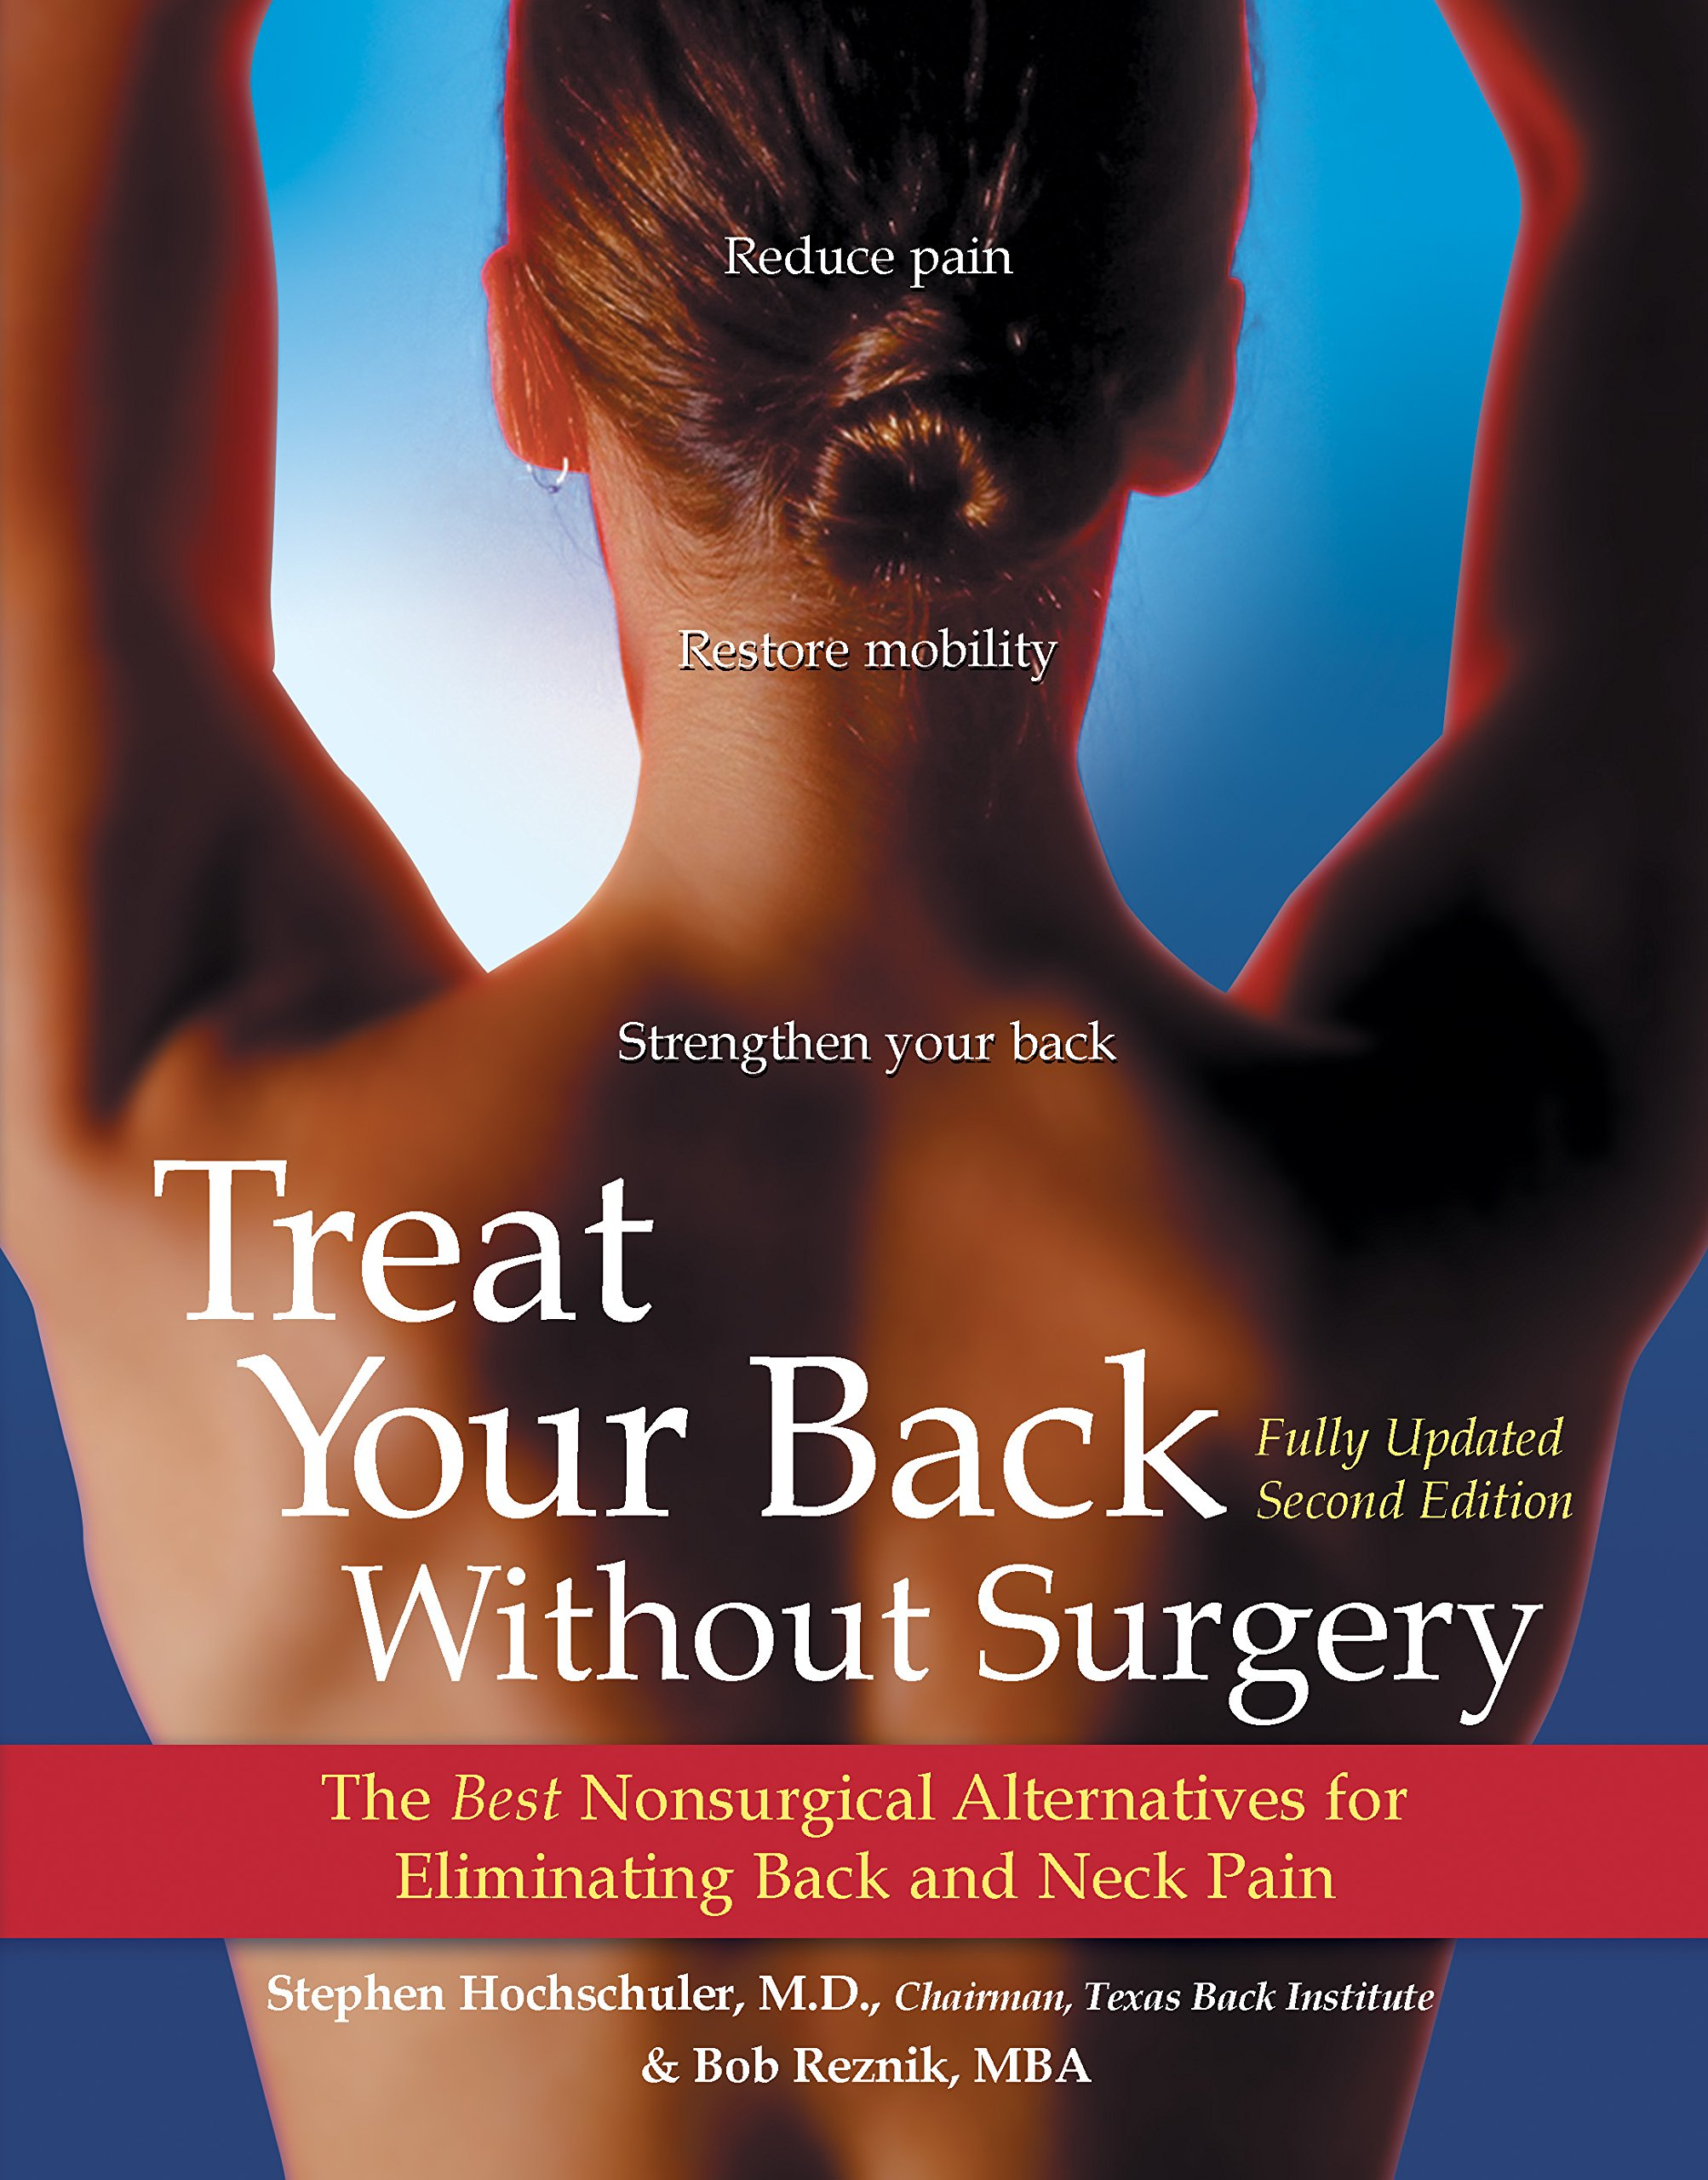 Download Treat Your Back Without Surgery: The Best Nonsurgical Alternatives for Eliminating Back and Neck Pain, Fully Updated Second Edition pdf